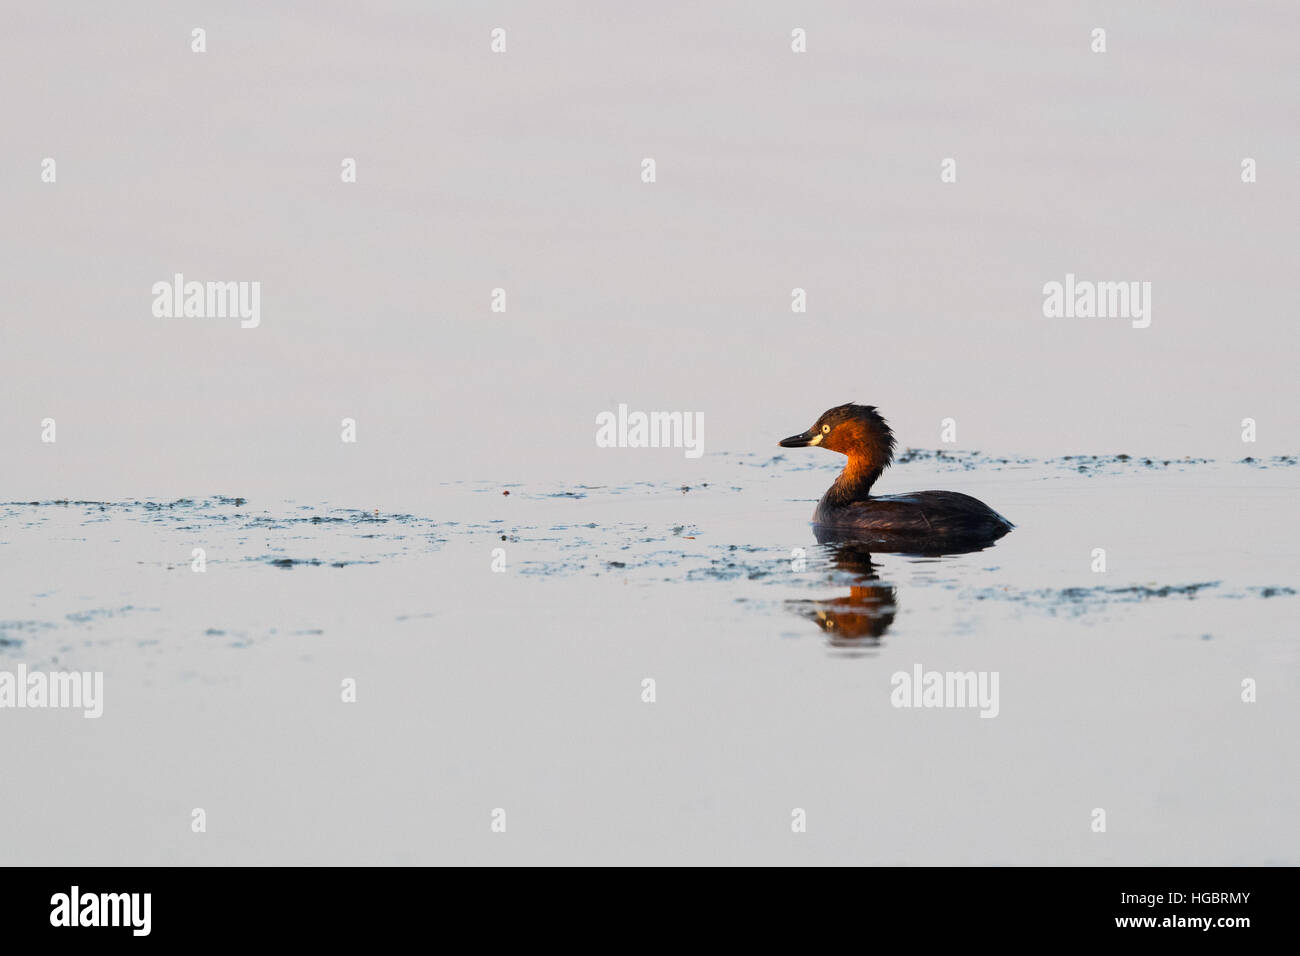 The little grebe (Tachybaptus ruficollis), also known as dabchick, is a member of the grebe family of water birds. - Stock Image